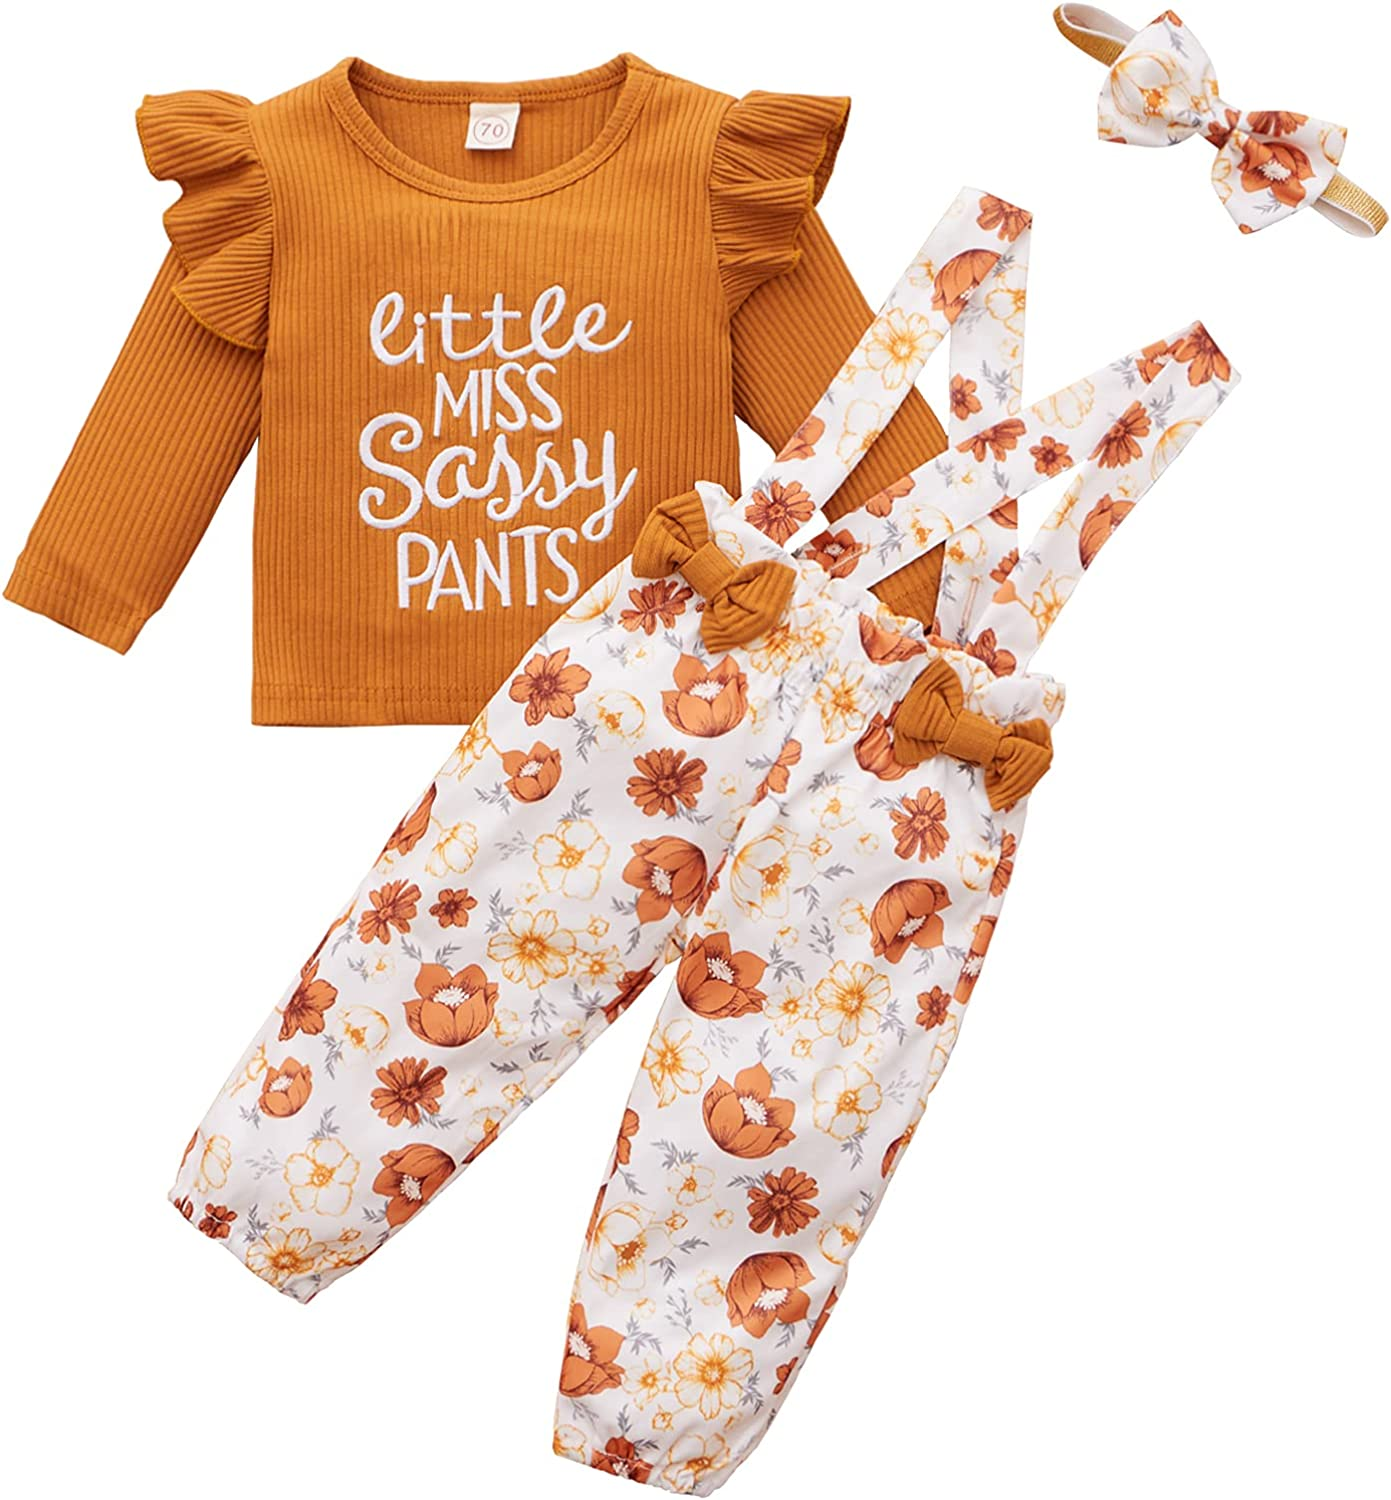 Toddler Baby Girl Floral Outfits Ruffle Sleeve Ribbed T-Shirt and Suspender Pants with Headband Clothes Set